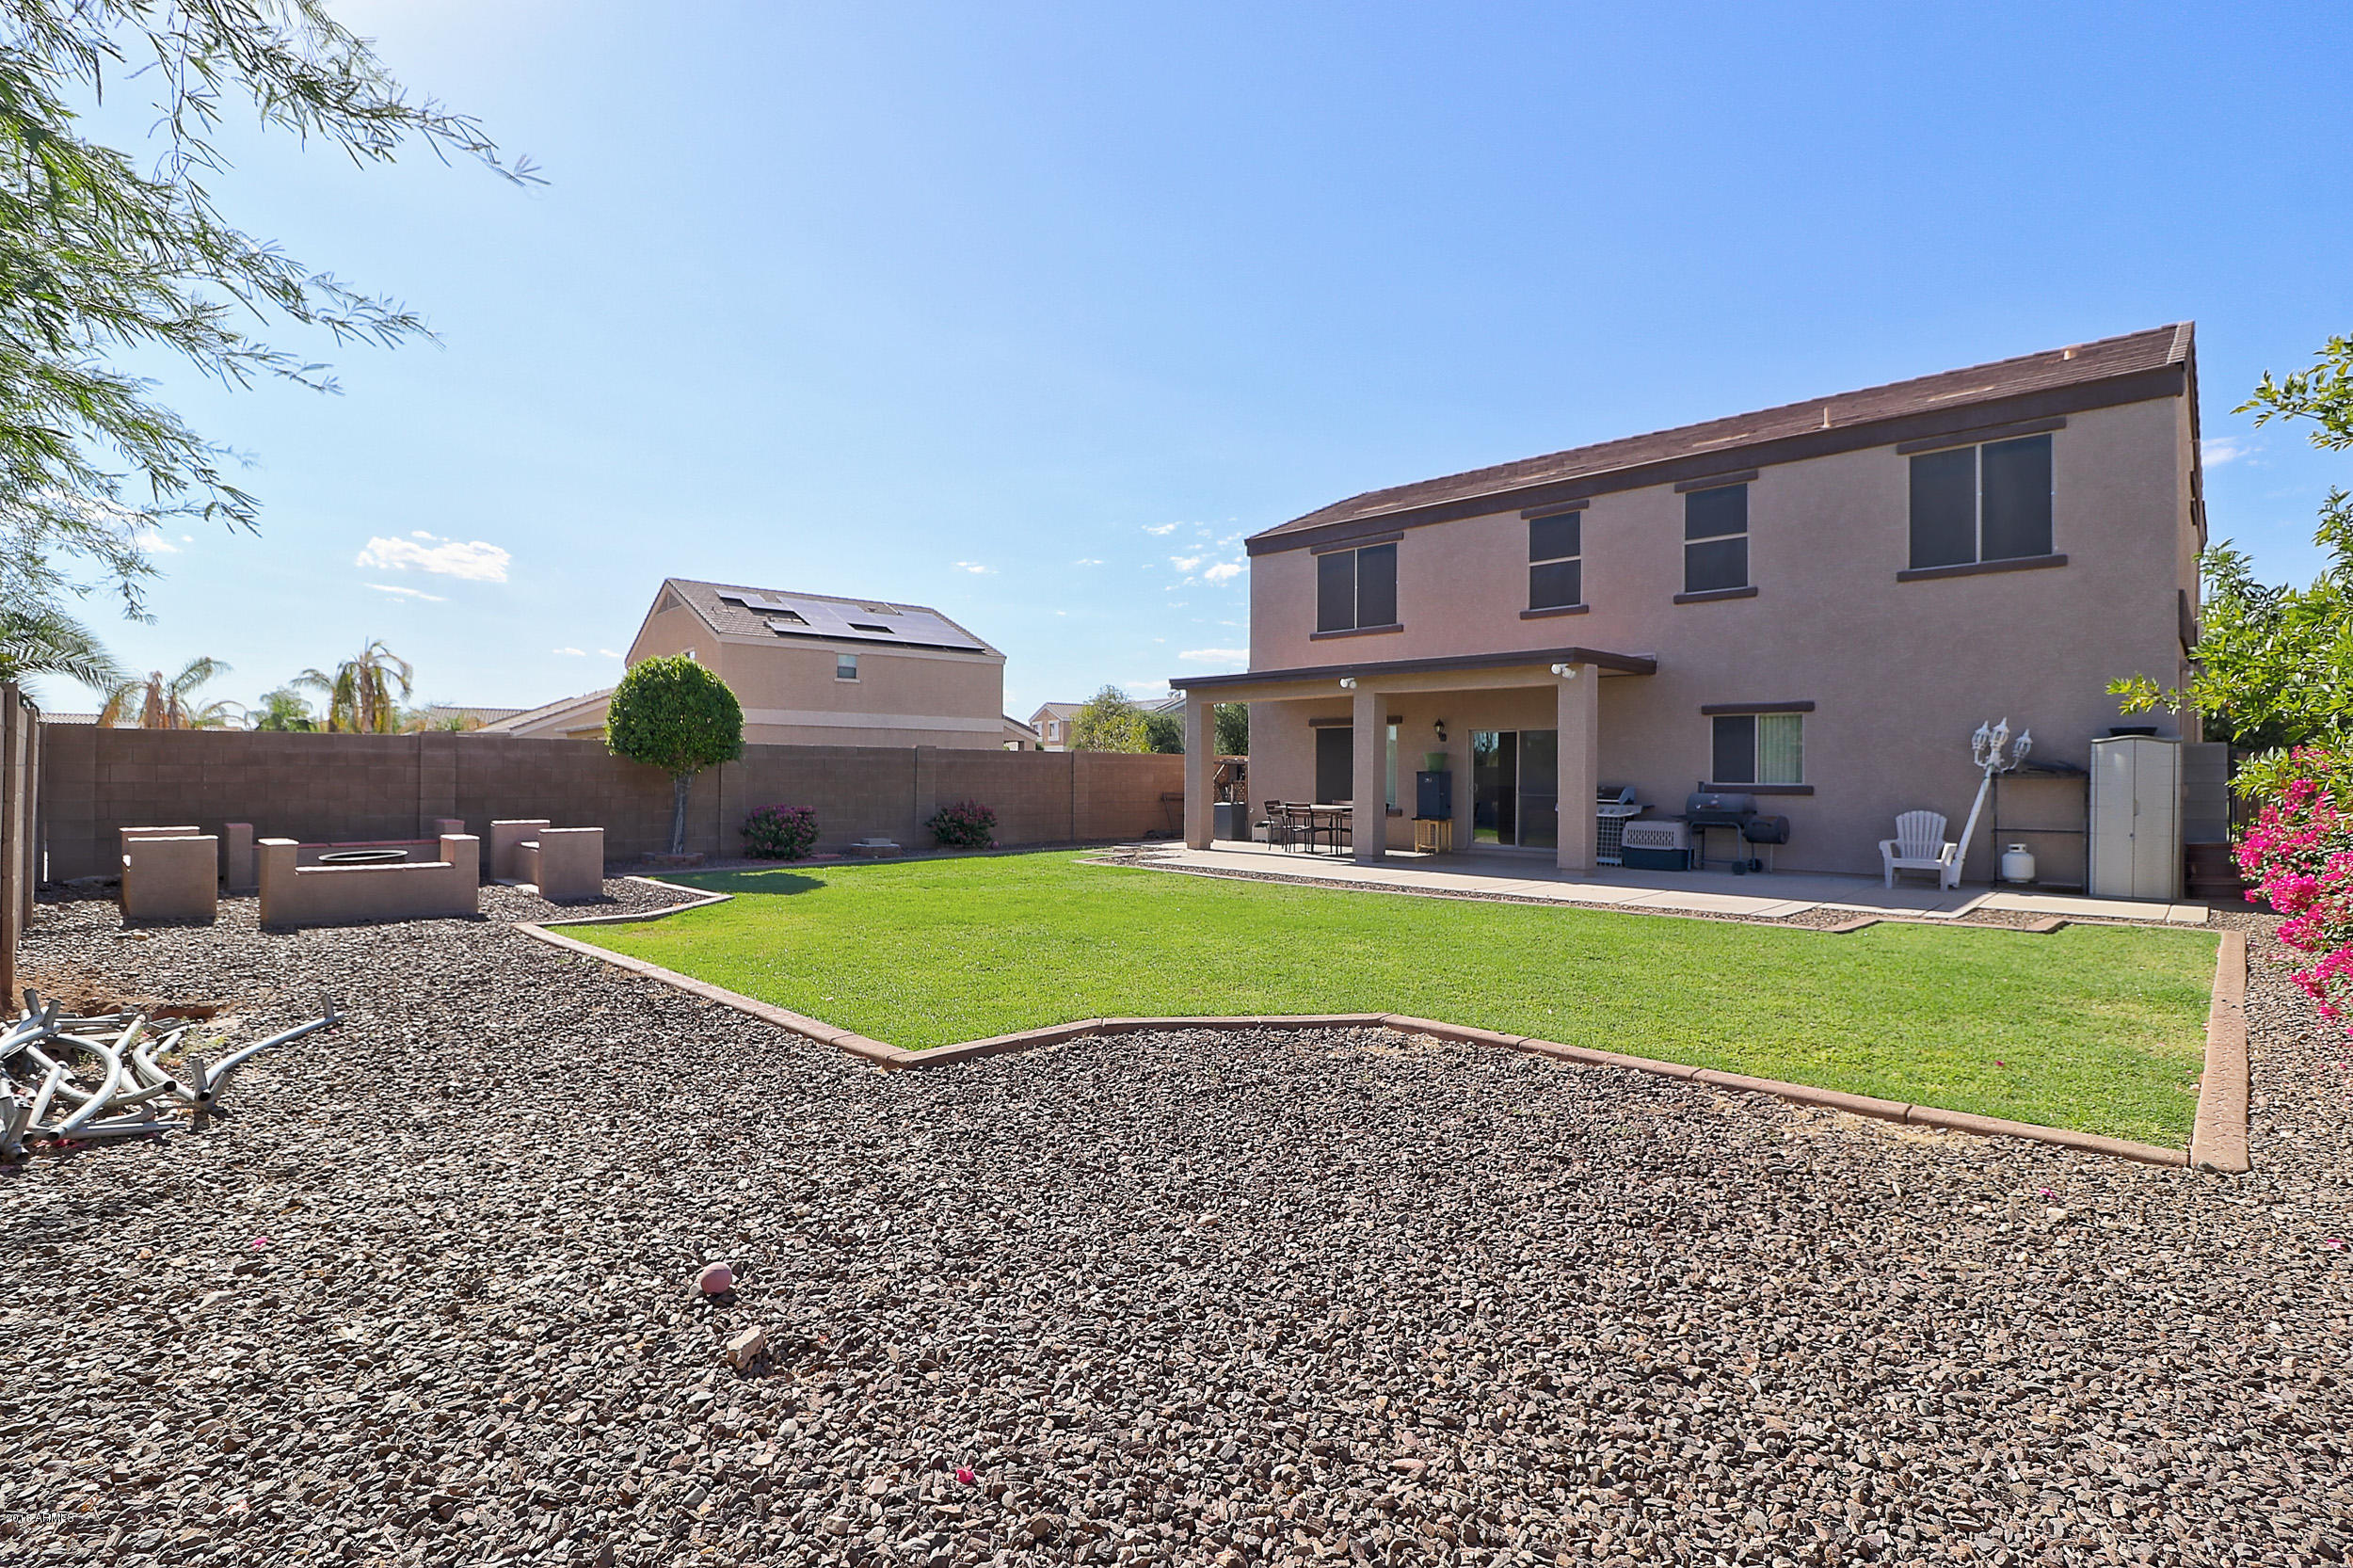 MLS 5818445 12121 W DREYFUS Drive, El Mirage, AZ 85335 El Mirage AZ Four Bedroom